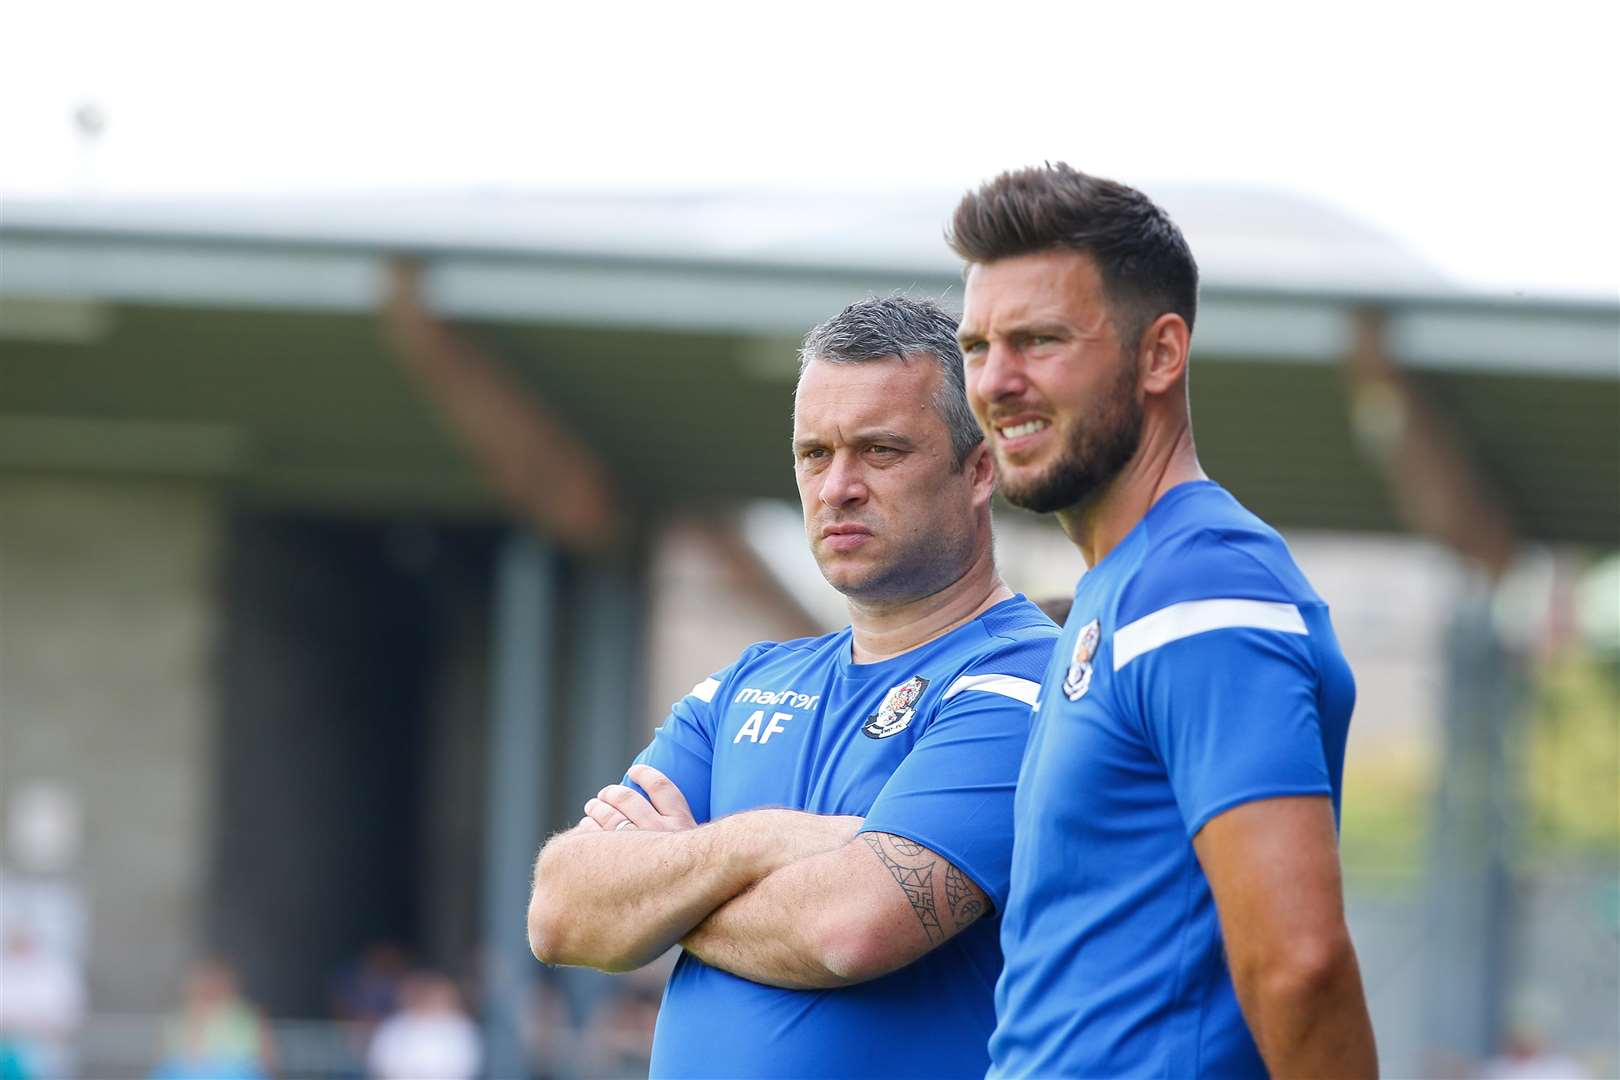 Dartford managers Adam Flanagan, left, and Jamie Coyle. Picture: Andy Jones